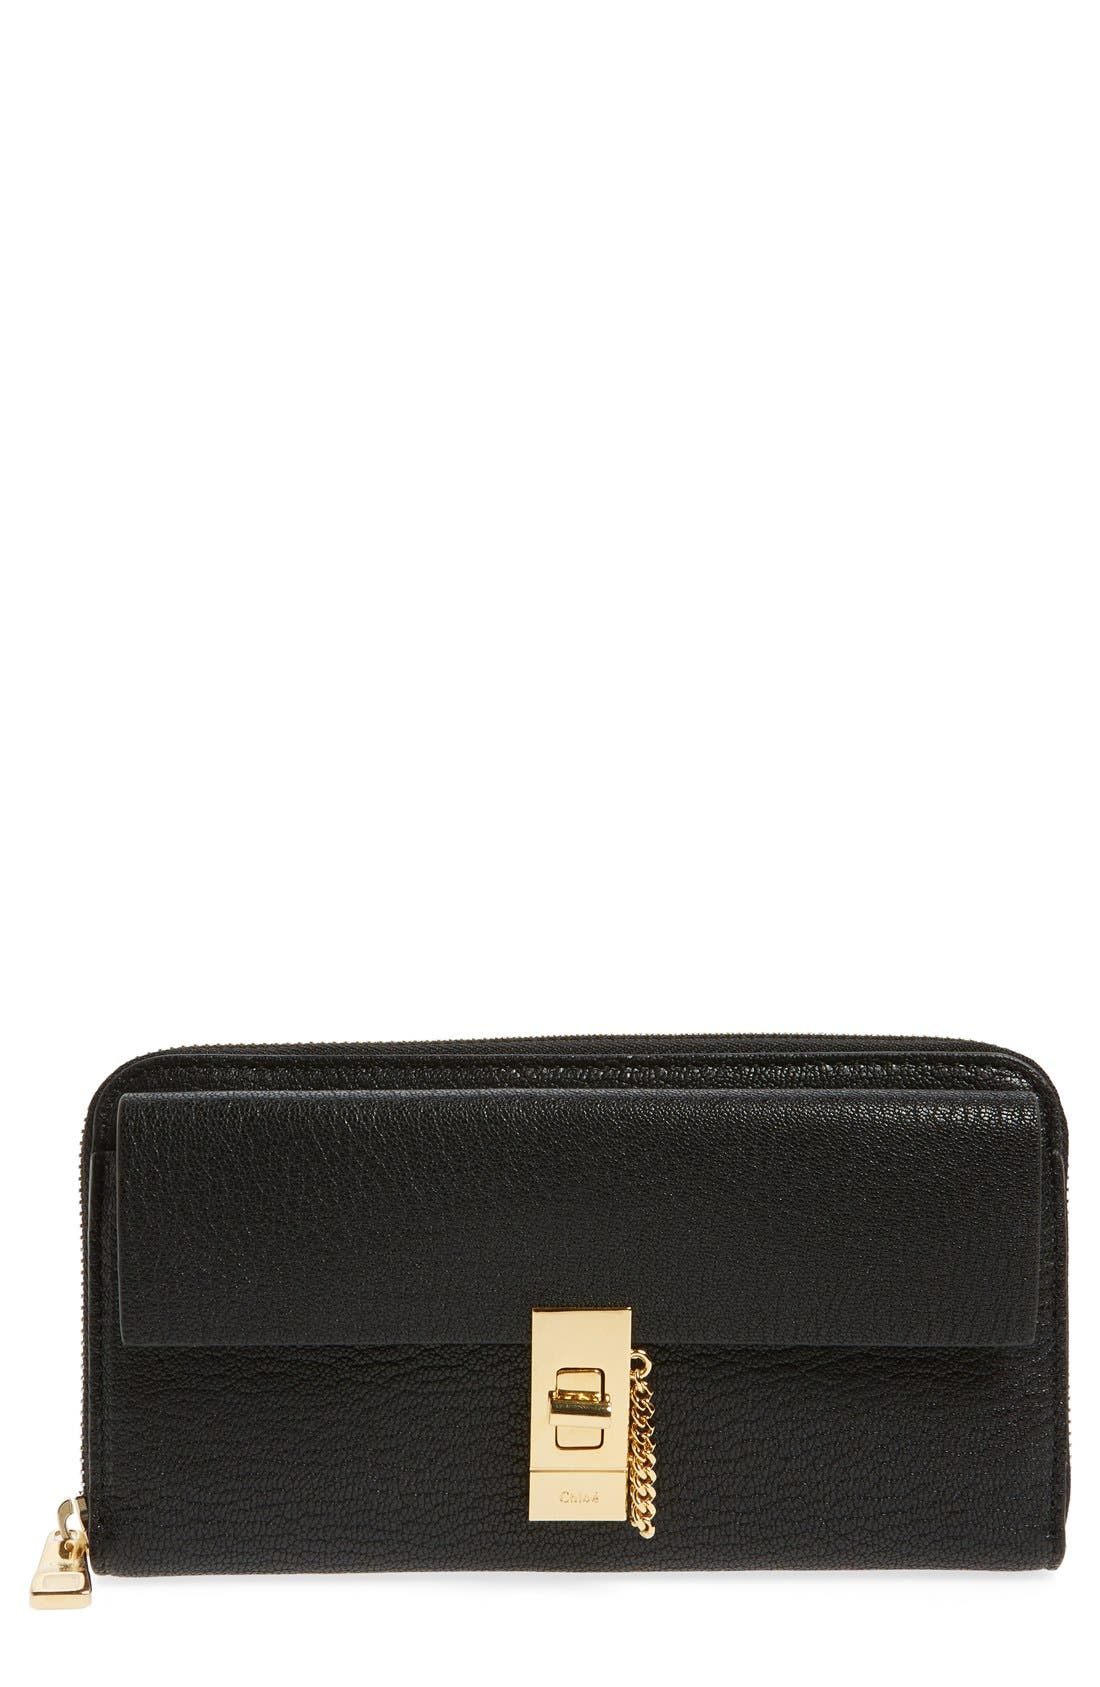 Main Image - Chloé 'Drew' Calfskin Leather Zip Around Wallet